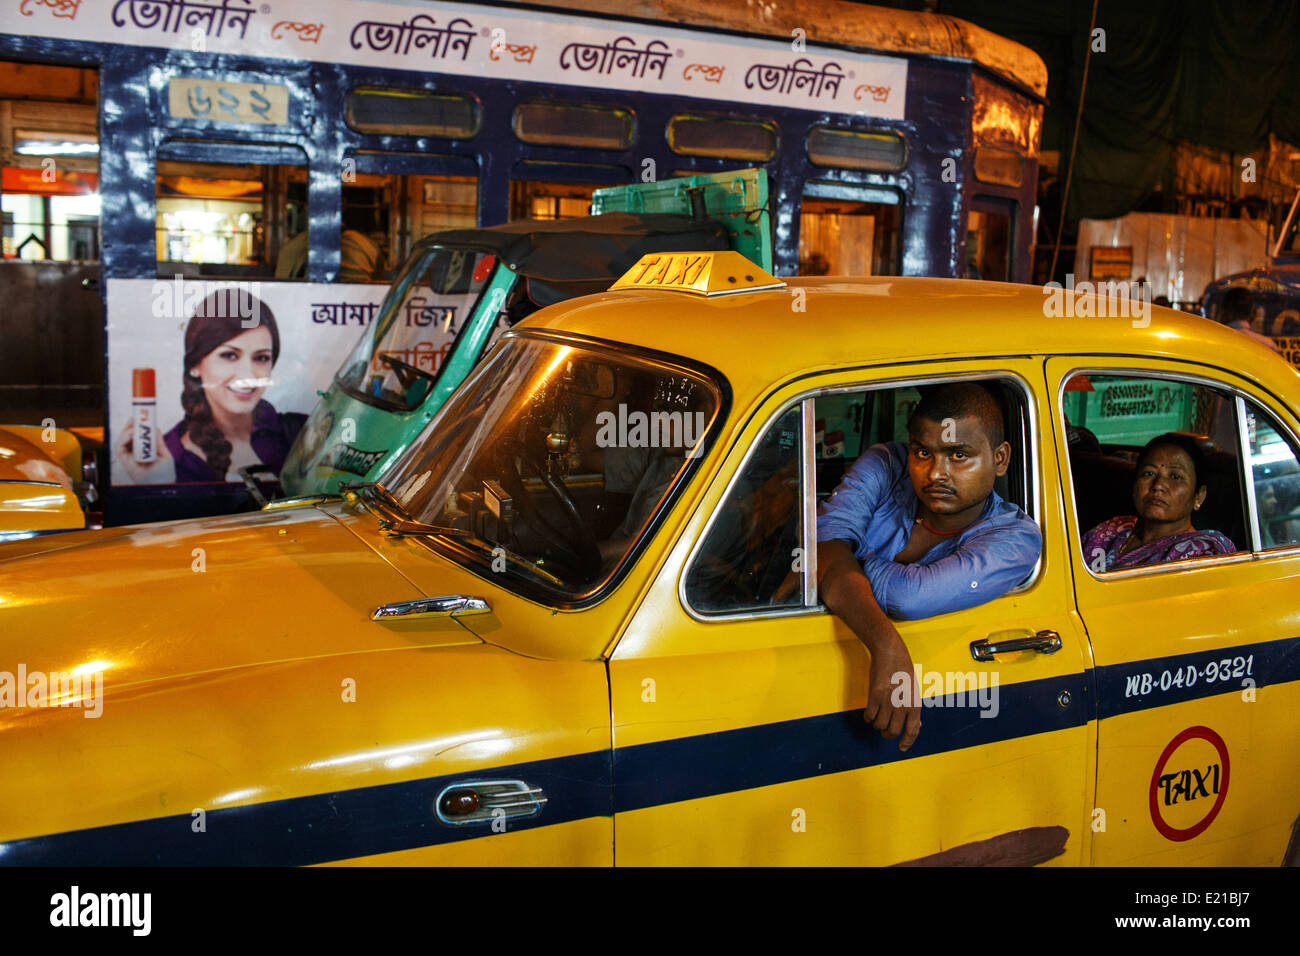 A taxi driver and his yellow Ambassador car stuck in a traffic jam in central Kolkata (Calcutta) India. - Stock Image